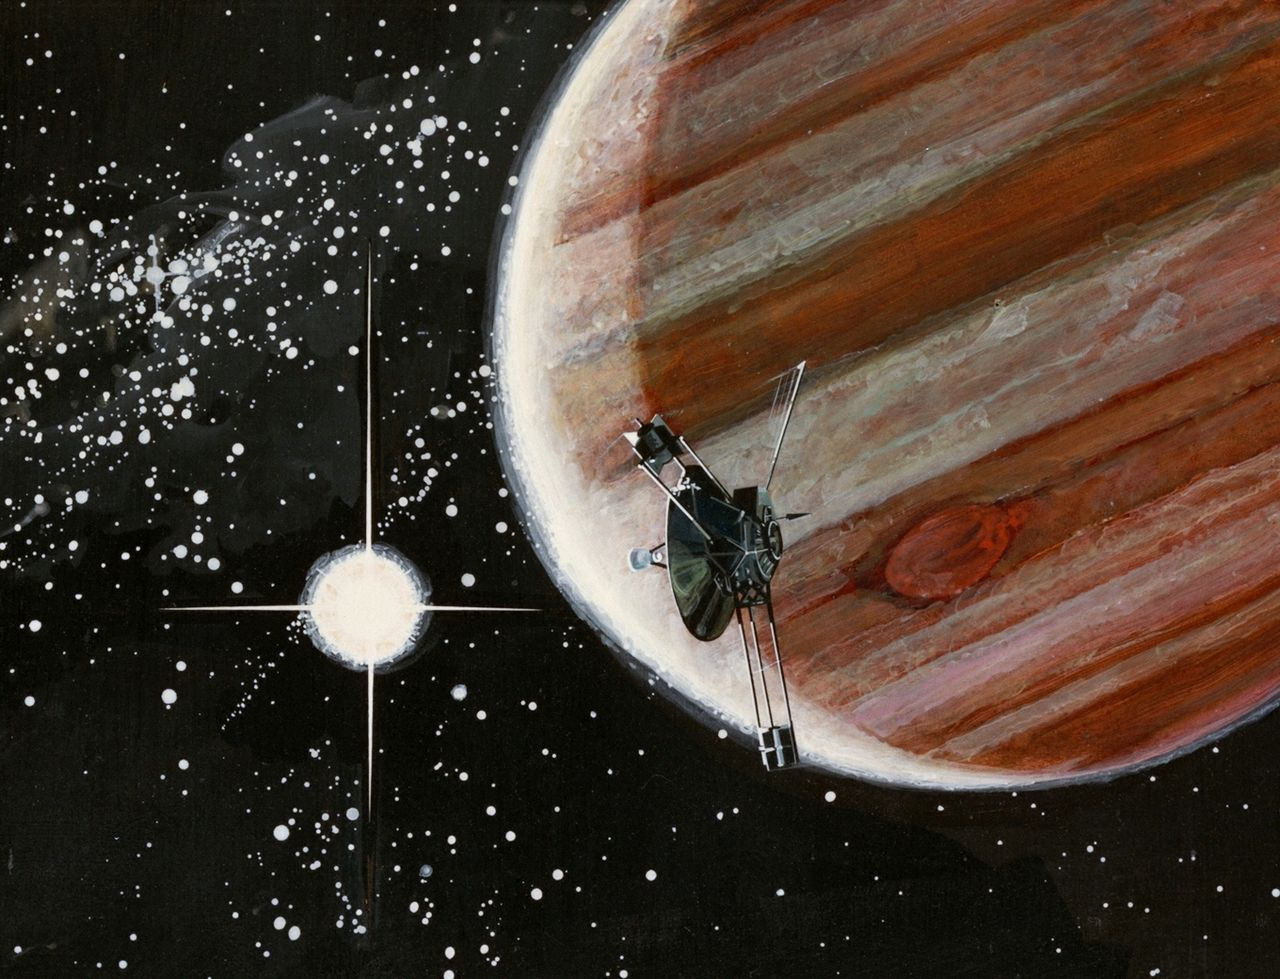 Consciousness Energy Path 111: Pioneer 10 Spacecraft ...